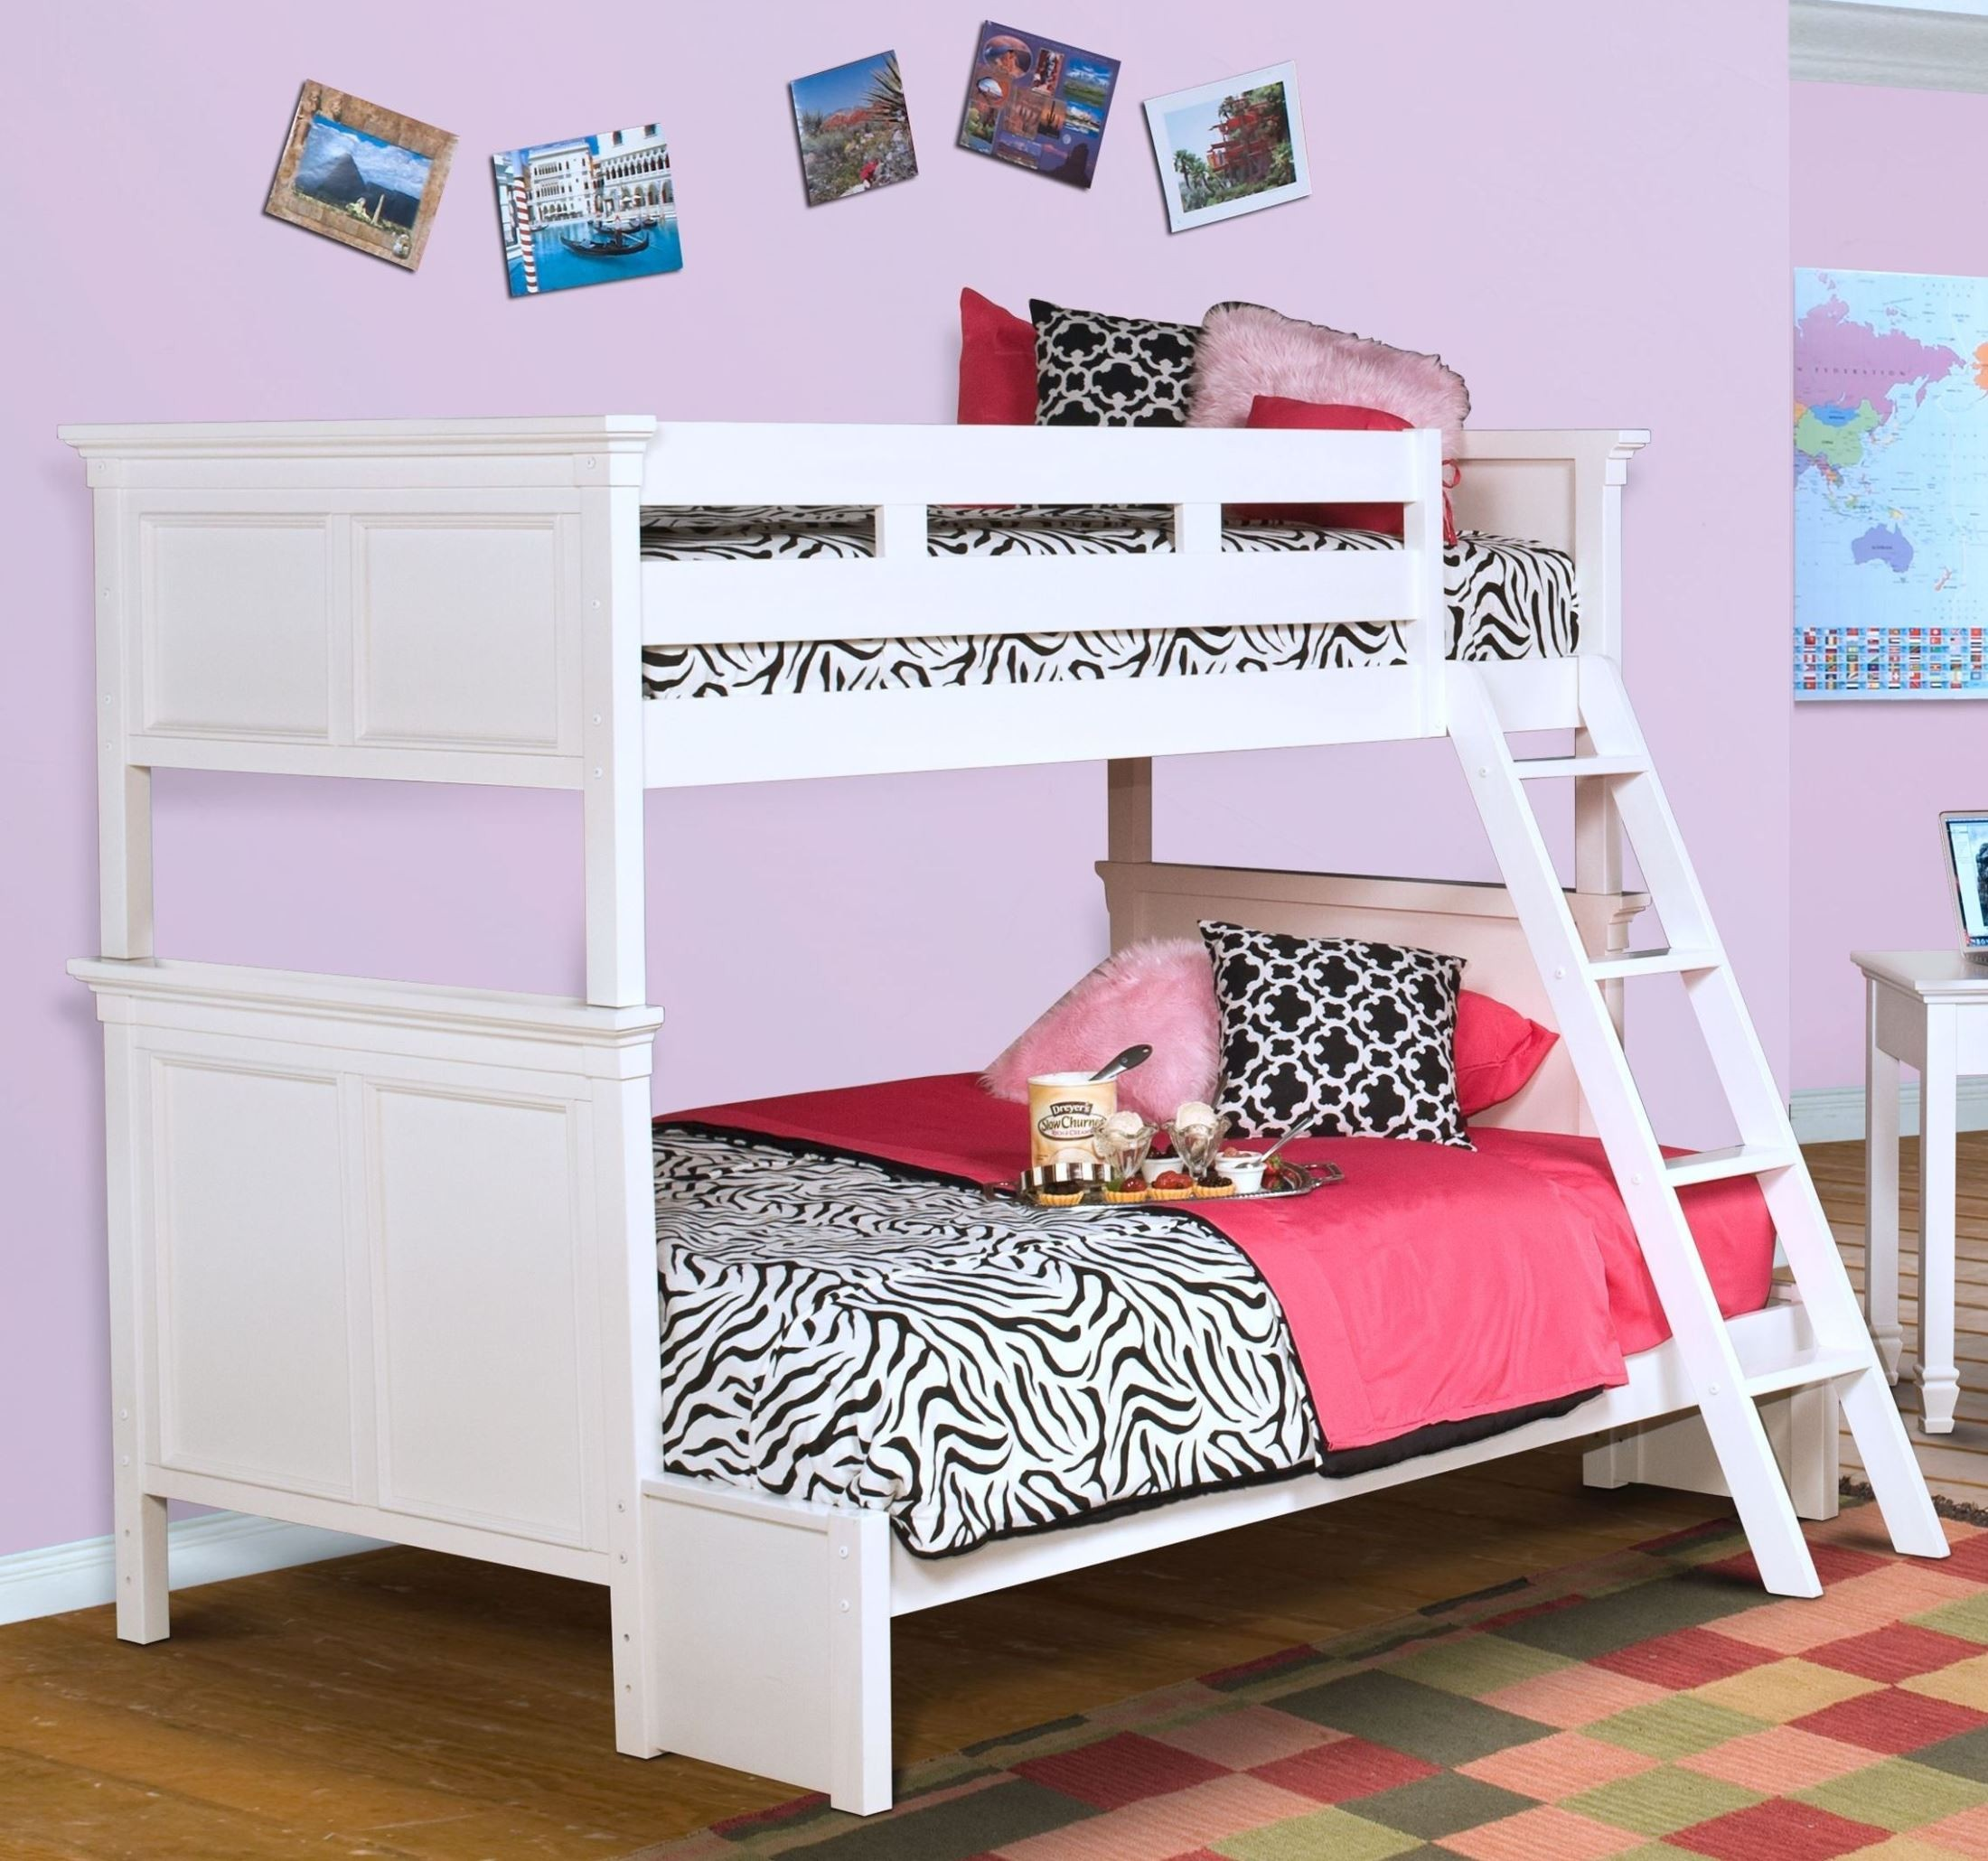 Cheap New Beds: Tamarack White Twin Over Full Bunk Bed From New Classics